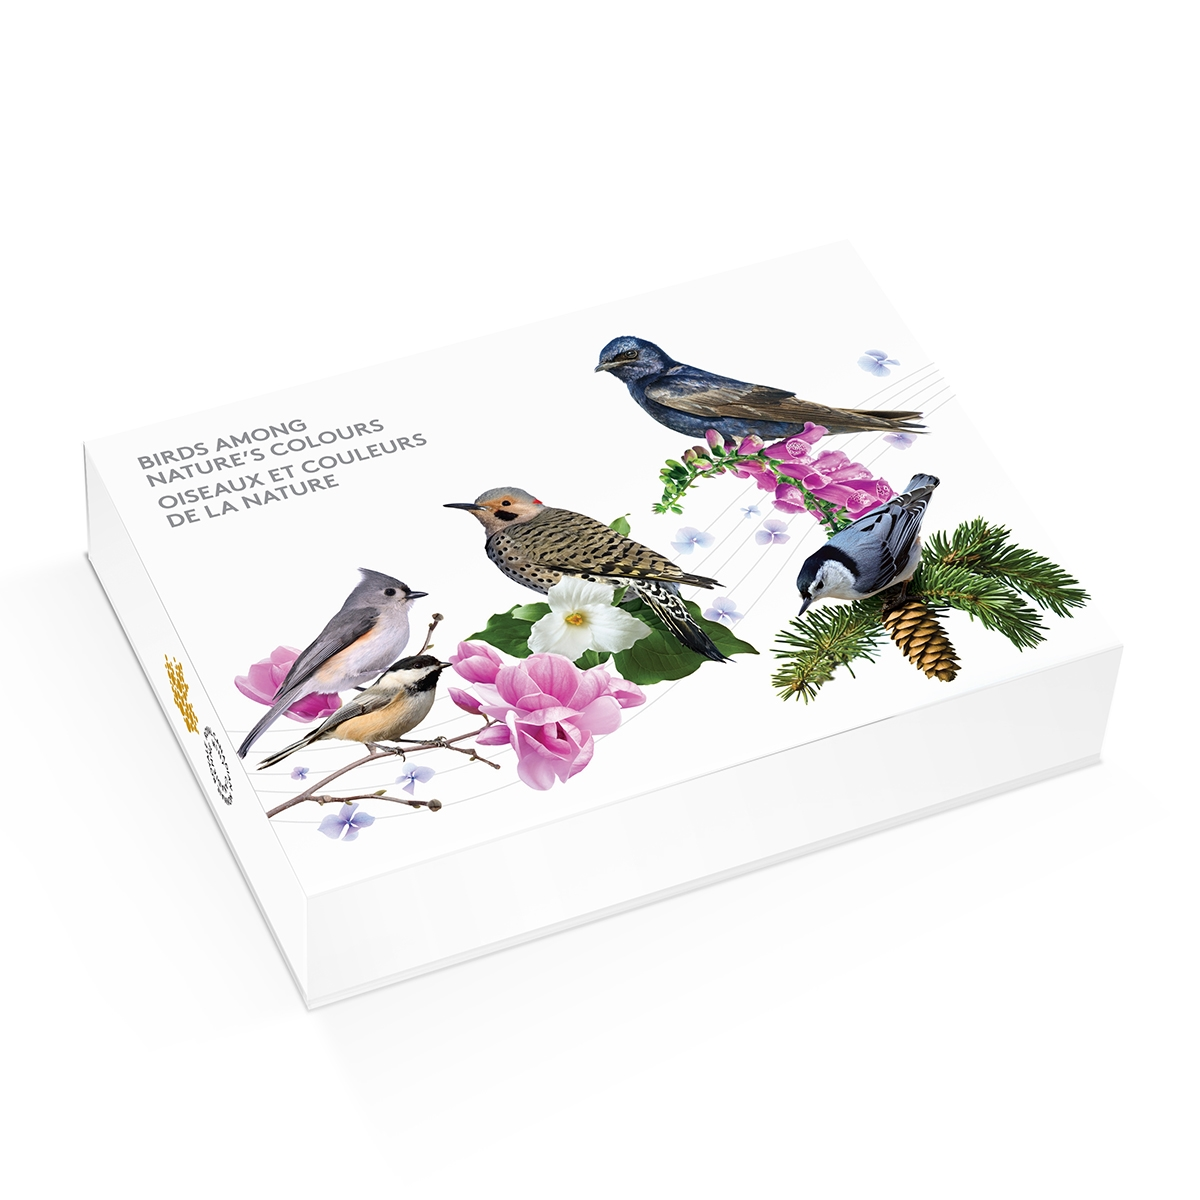 5 Coin Set BOX ONLY Canada 2017 $10 Birds Among Nature/'s Colours